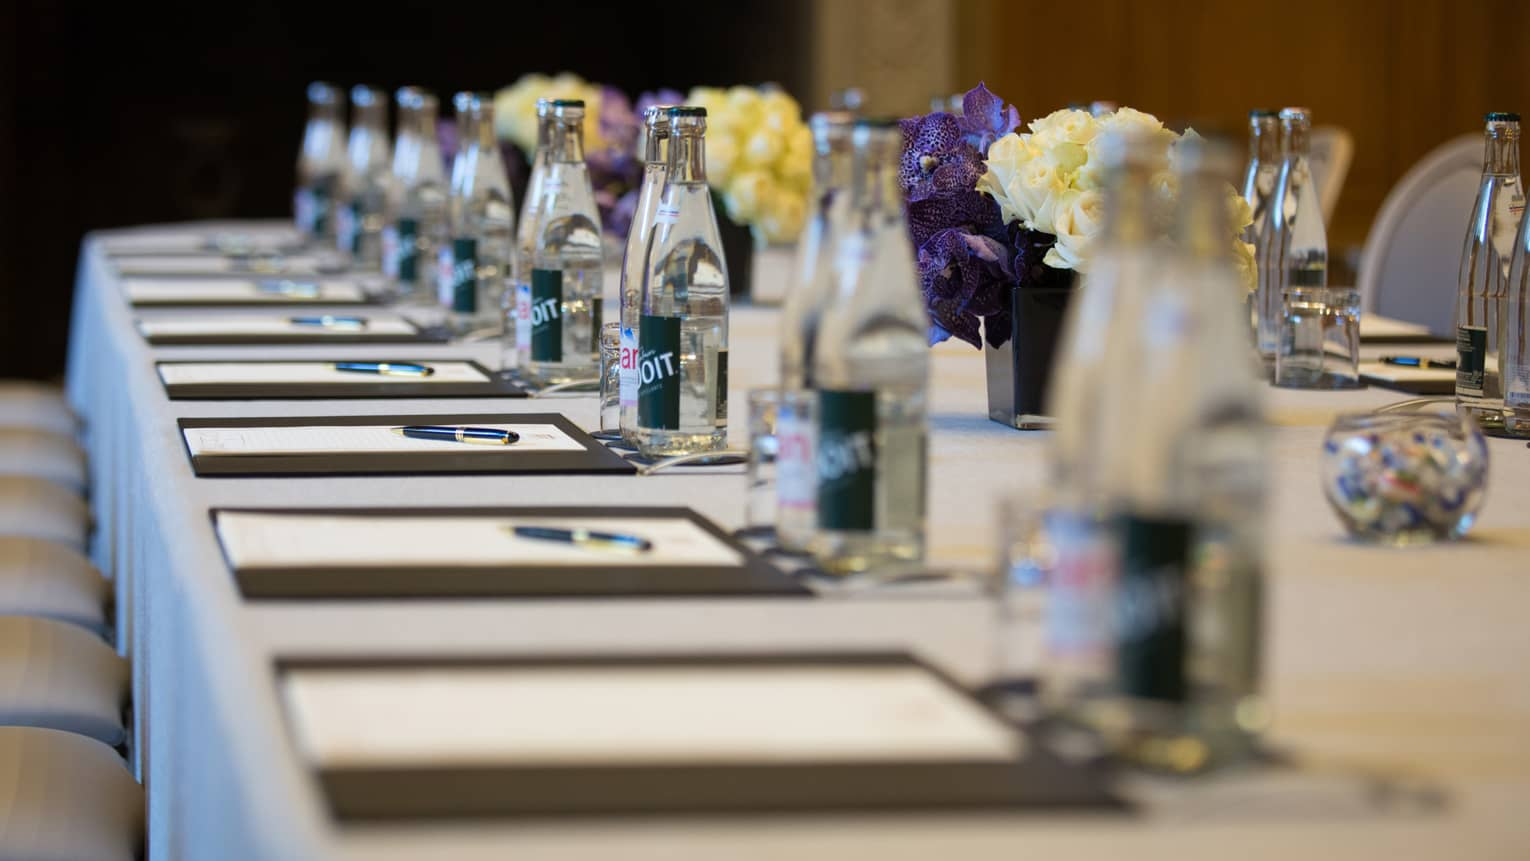 Row of meeting agendas, glass bottles, small vases with flowers on boardroom table